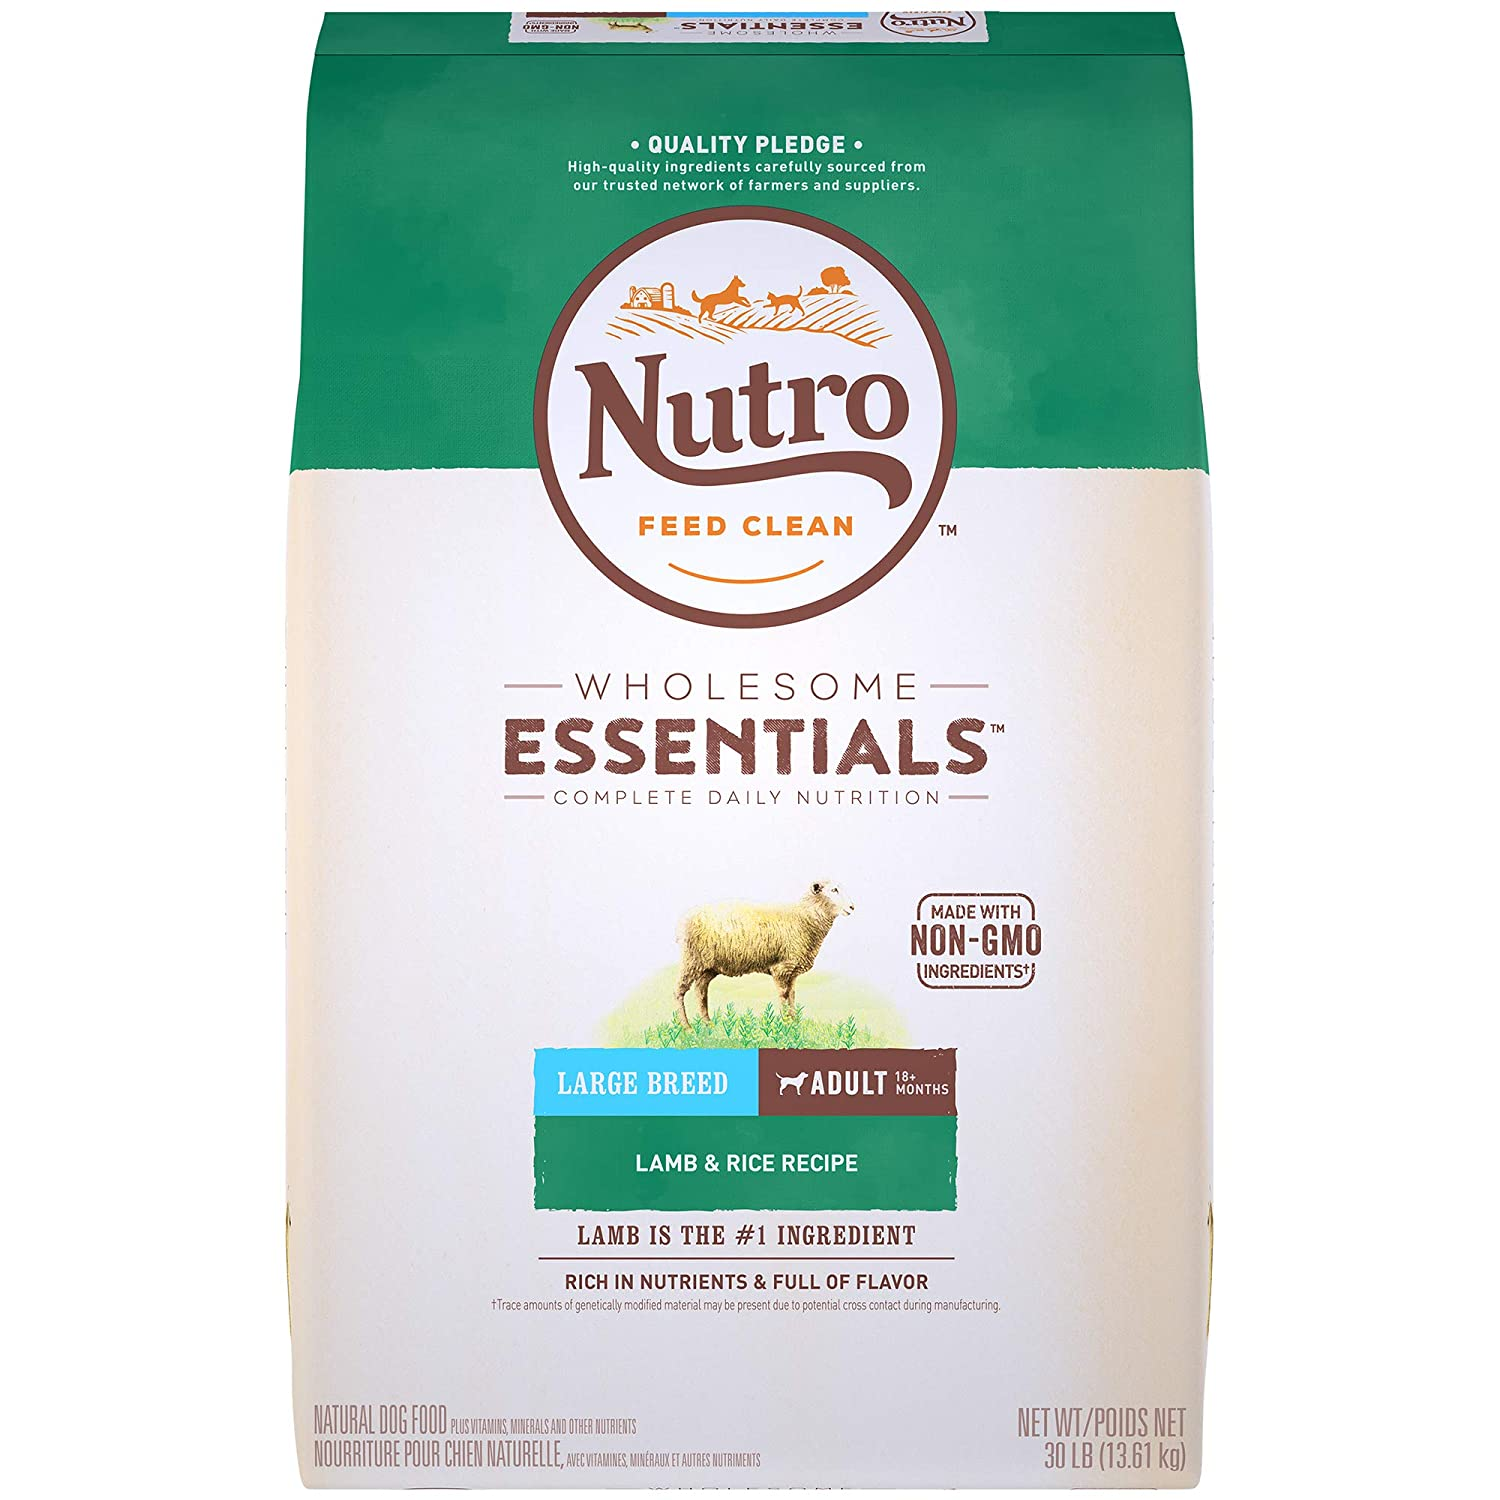 NUTRO Wholesome Essentials Adult Large Breed Natural Dry Dog Food – Lamb